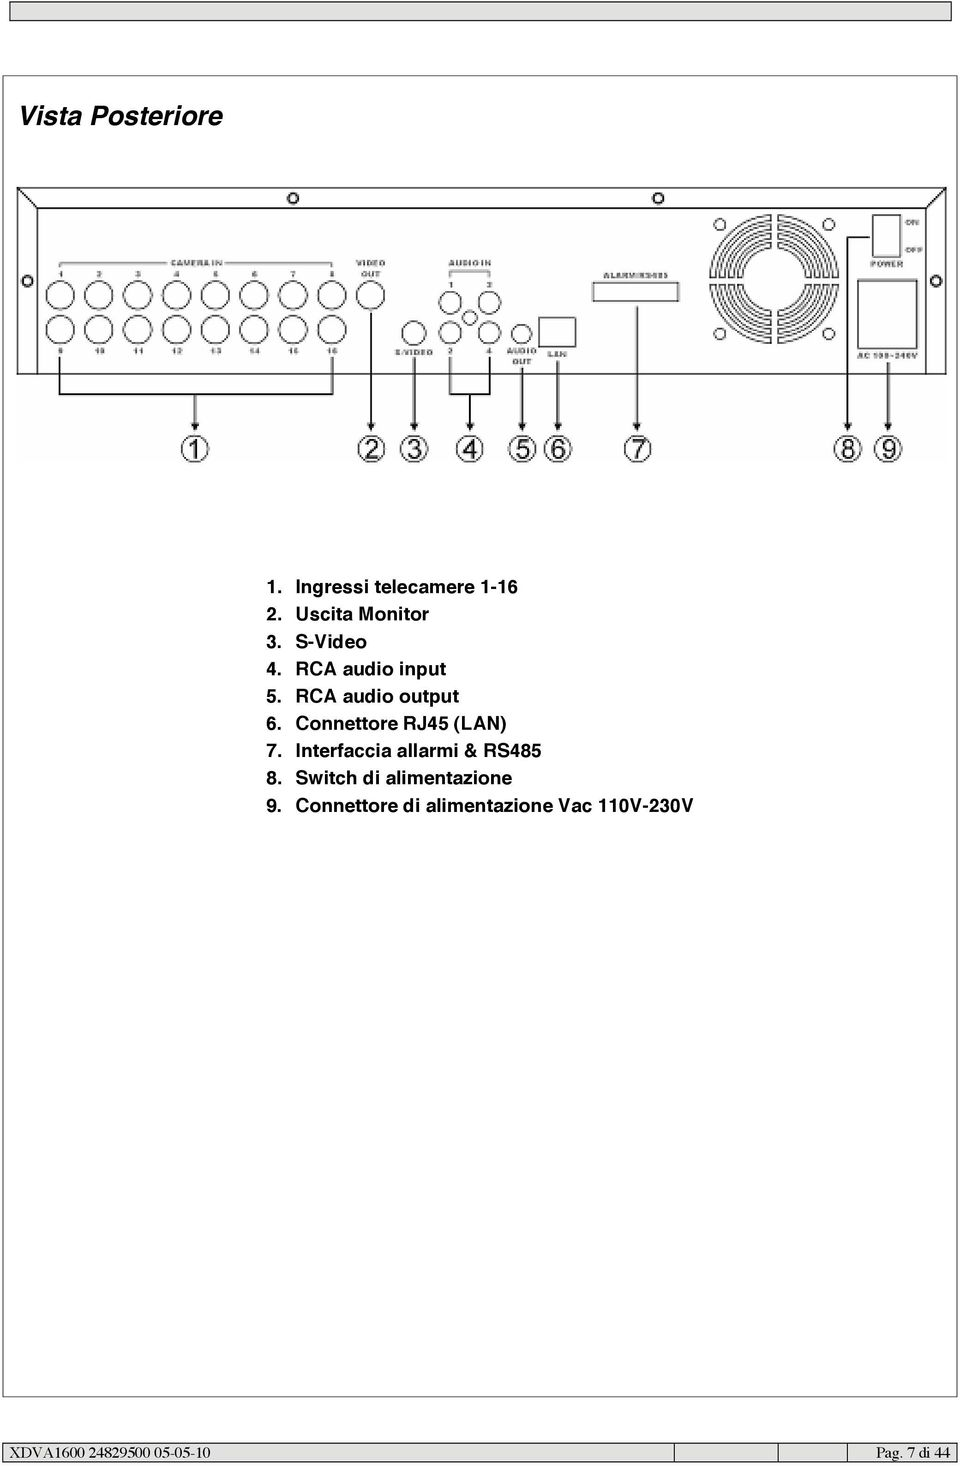 Connettore RJ45 (LAN) 7. Interfaccia allarmi & RS485 8.